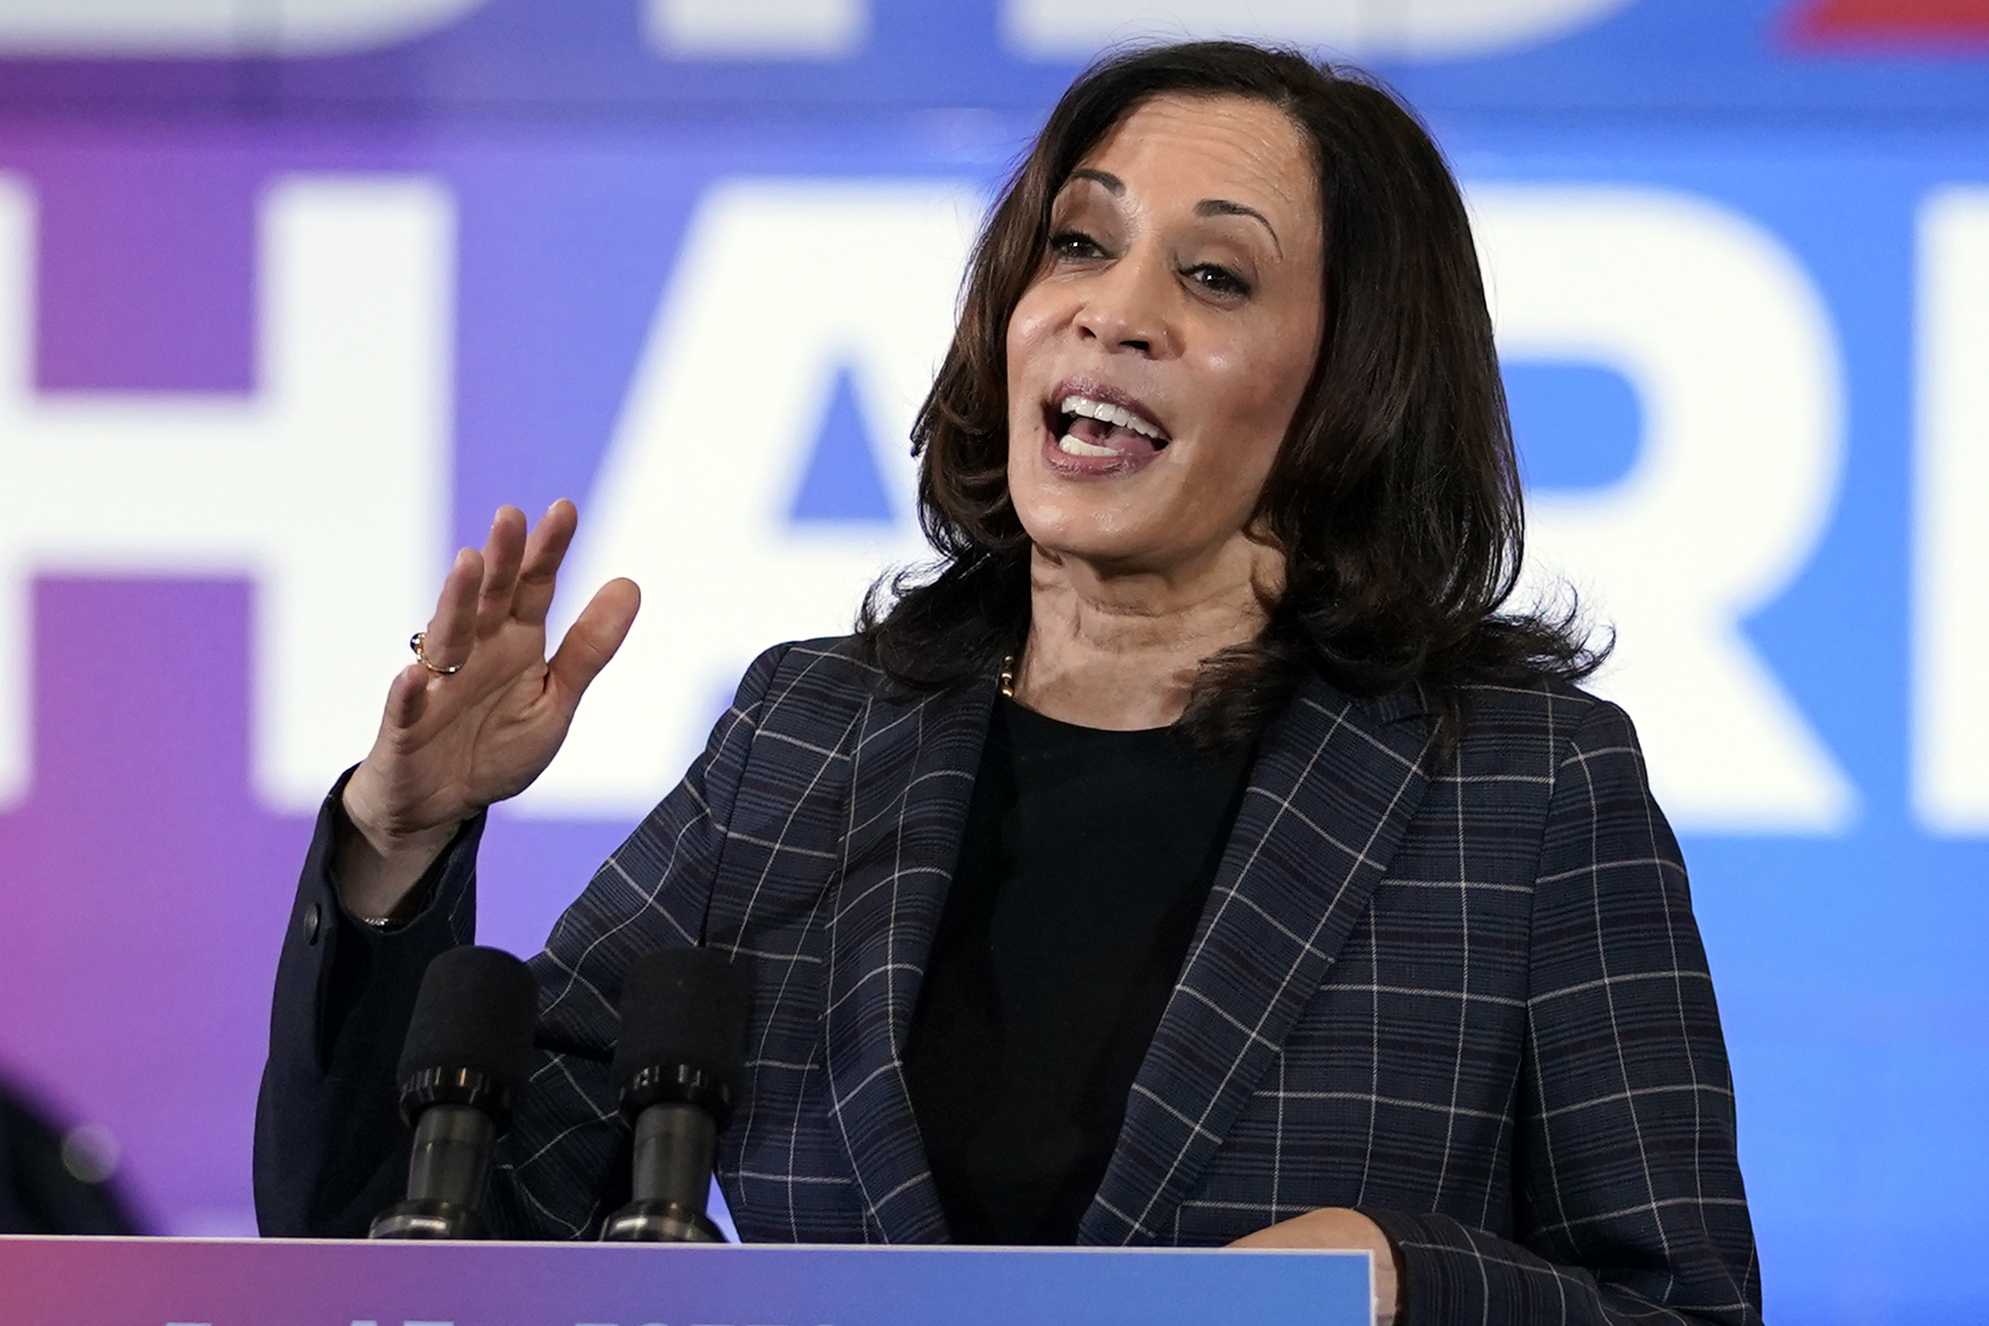 Kamala Harris Questions About Judge Barrett S Faith Are Off The Table For Confirmation Process Washington Times